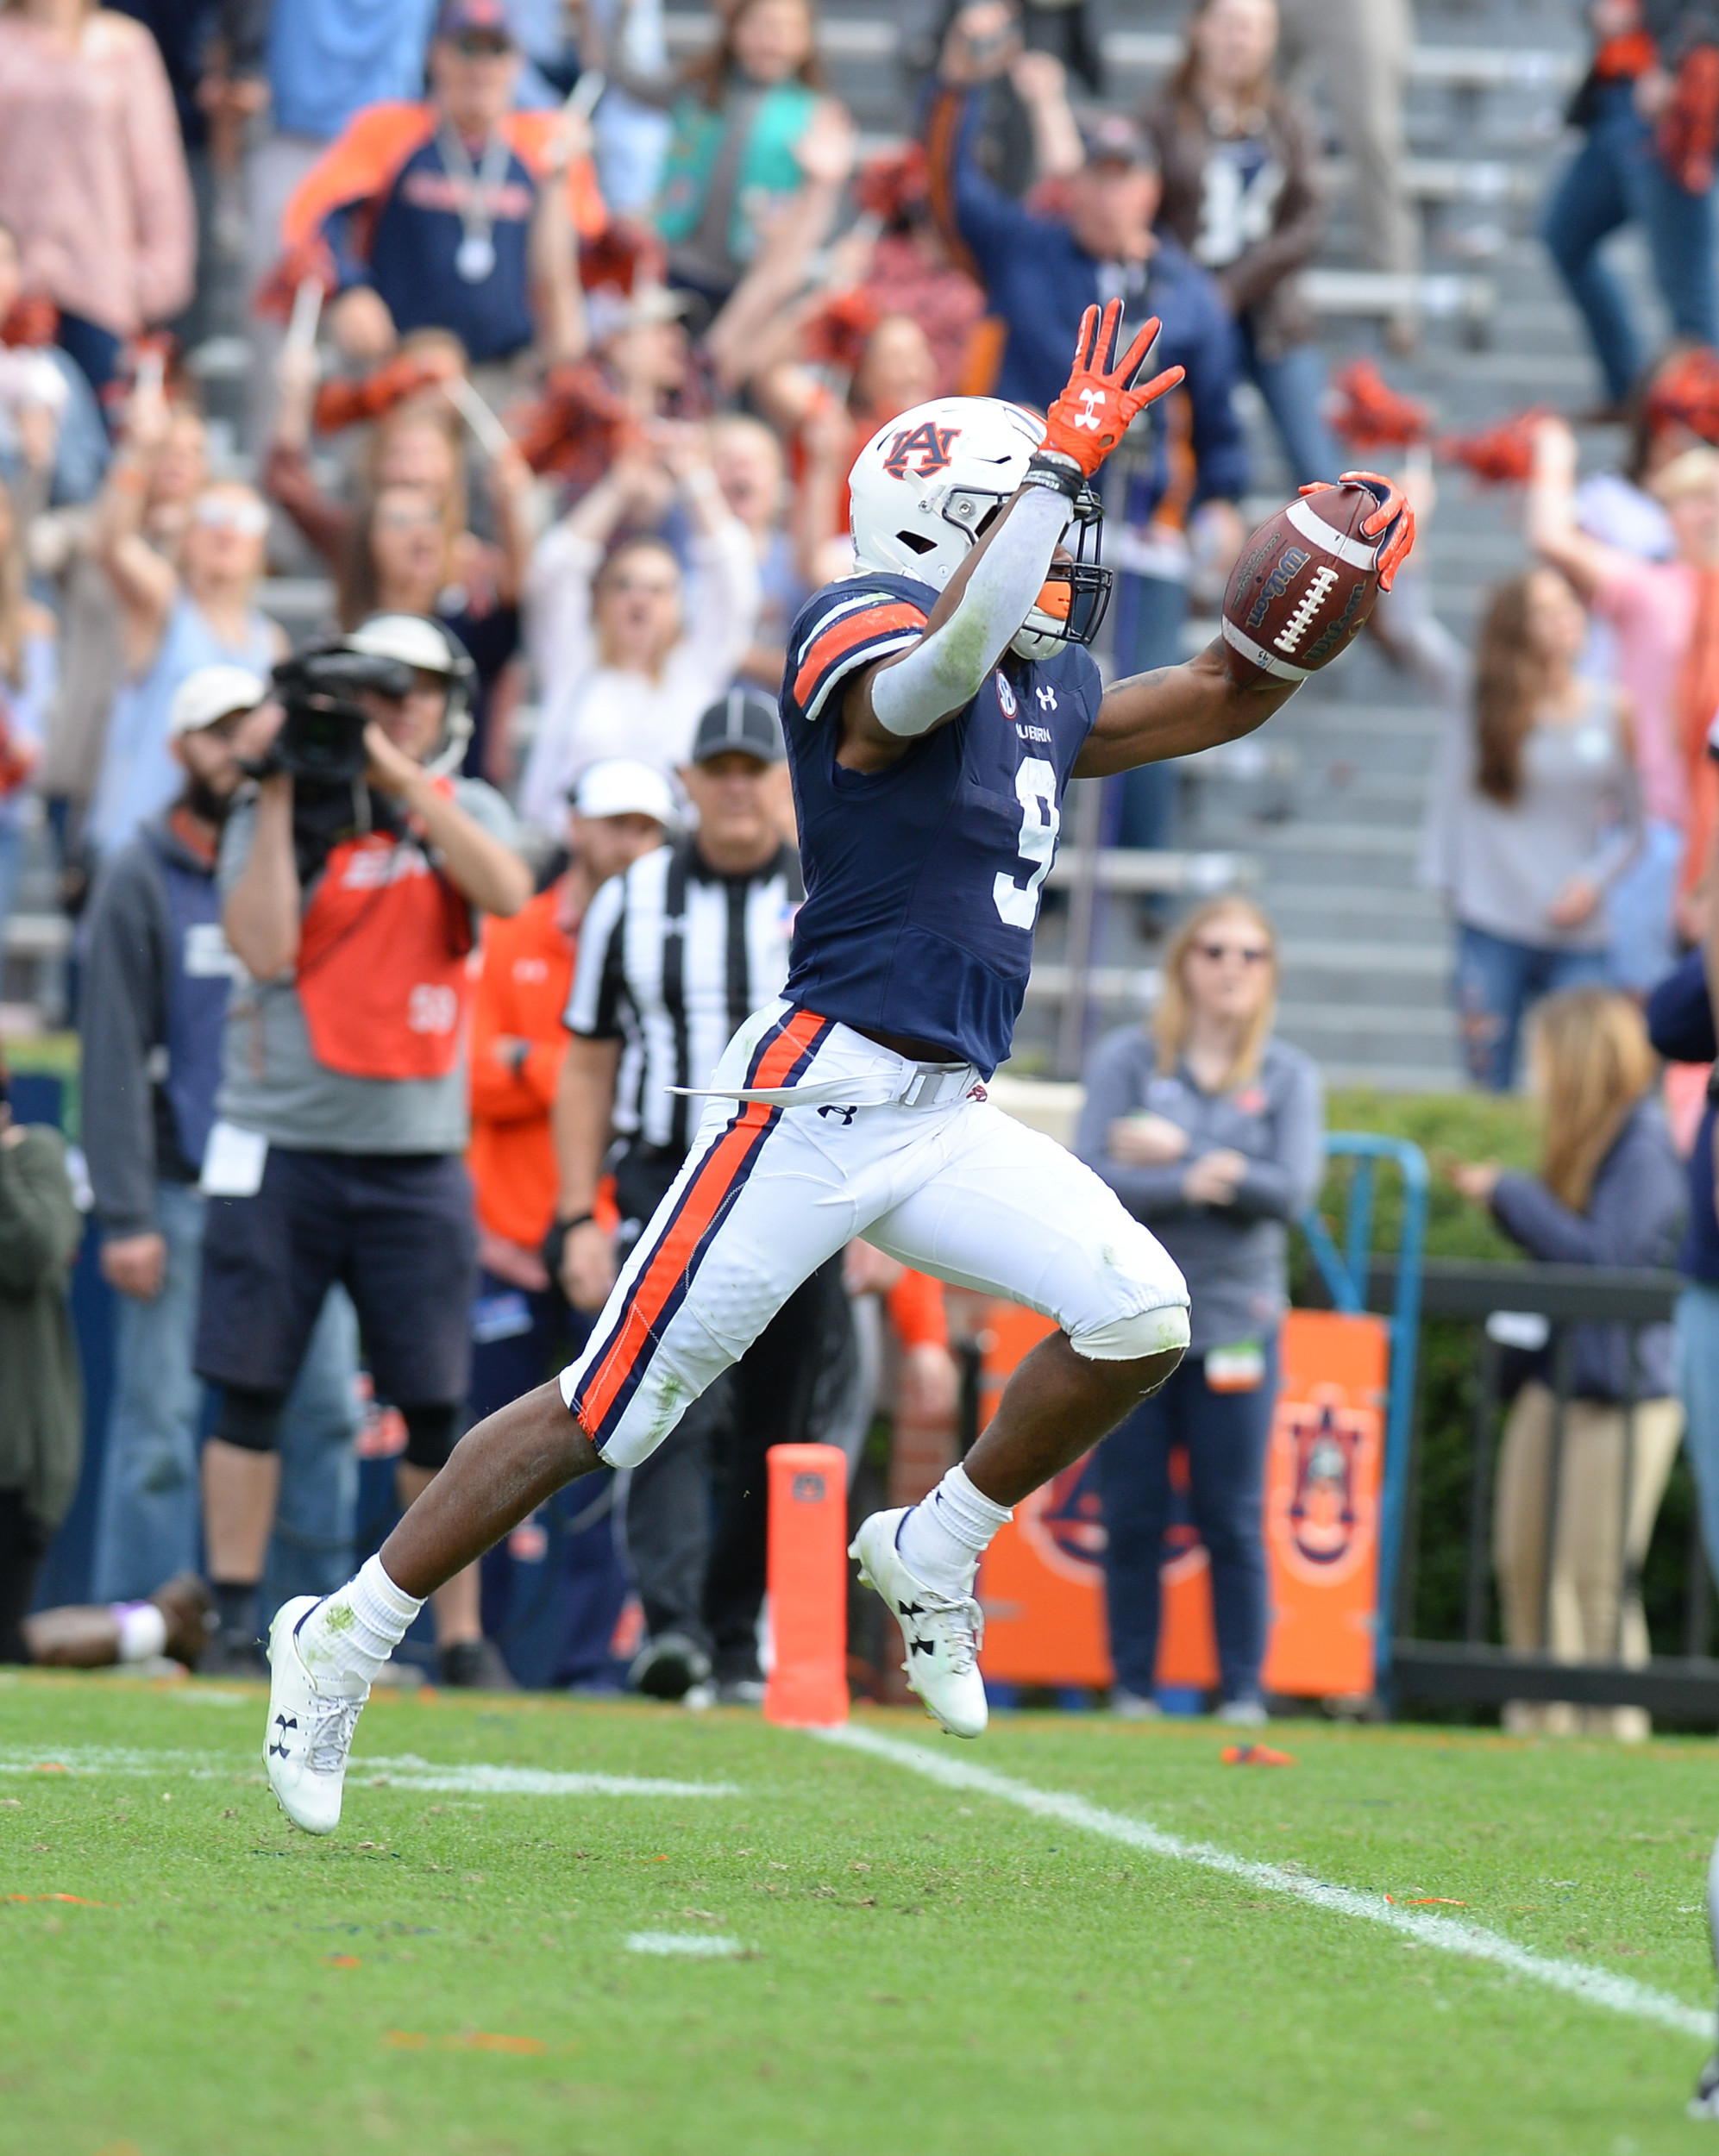 Auburn Tigers running back Kam Martin (9) scores on a 42 yard reception during the second half of Saturday's game, at Jordan-Hare Stadium.